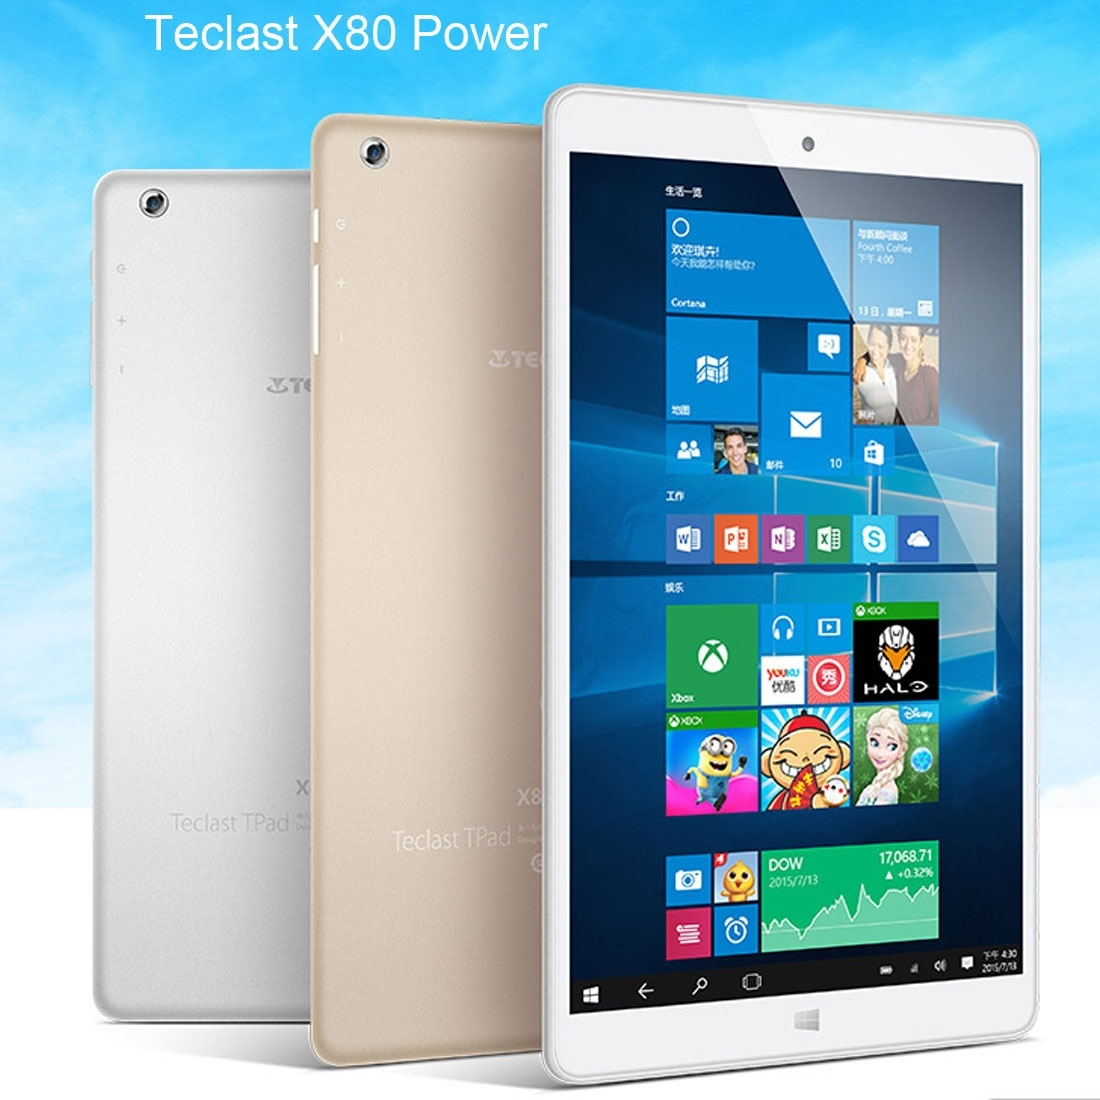 Teclast X80 power_5